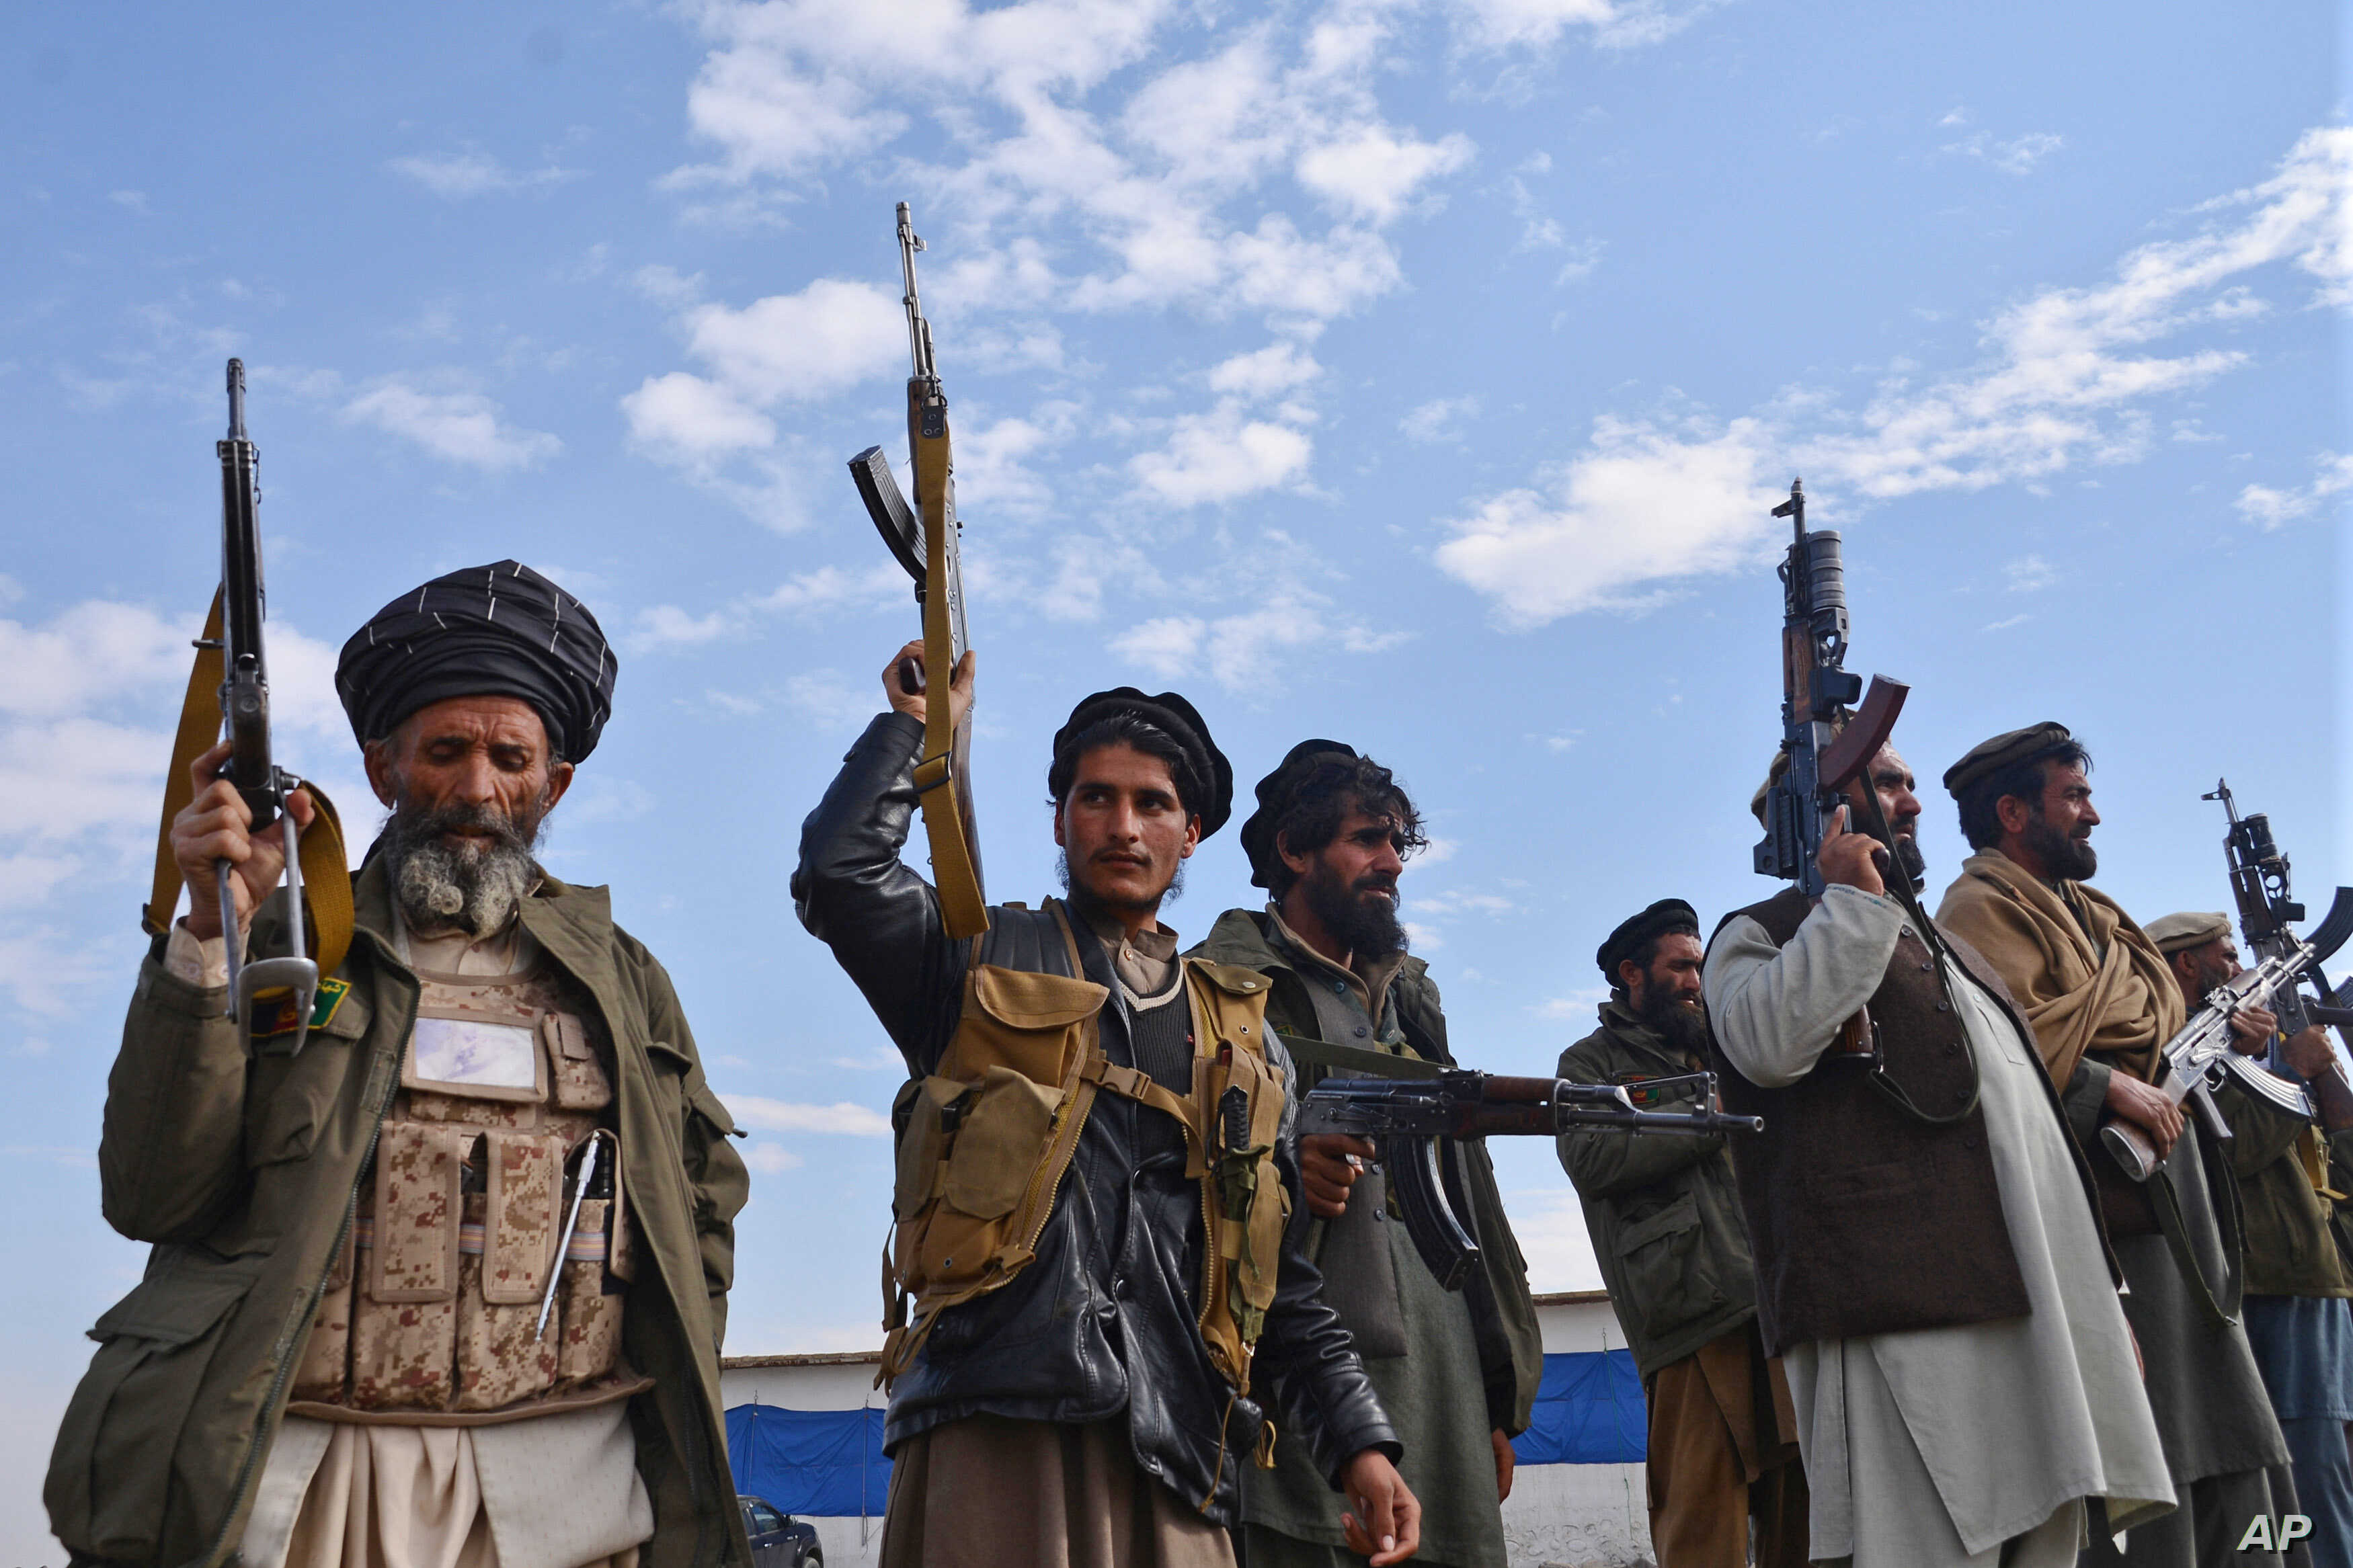 Afghan militiamen raise their weapons as they stand guard in the Achin district of Nangarhar province, Afghanistan, Dec. 27, 2015.